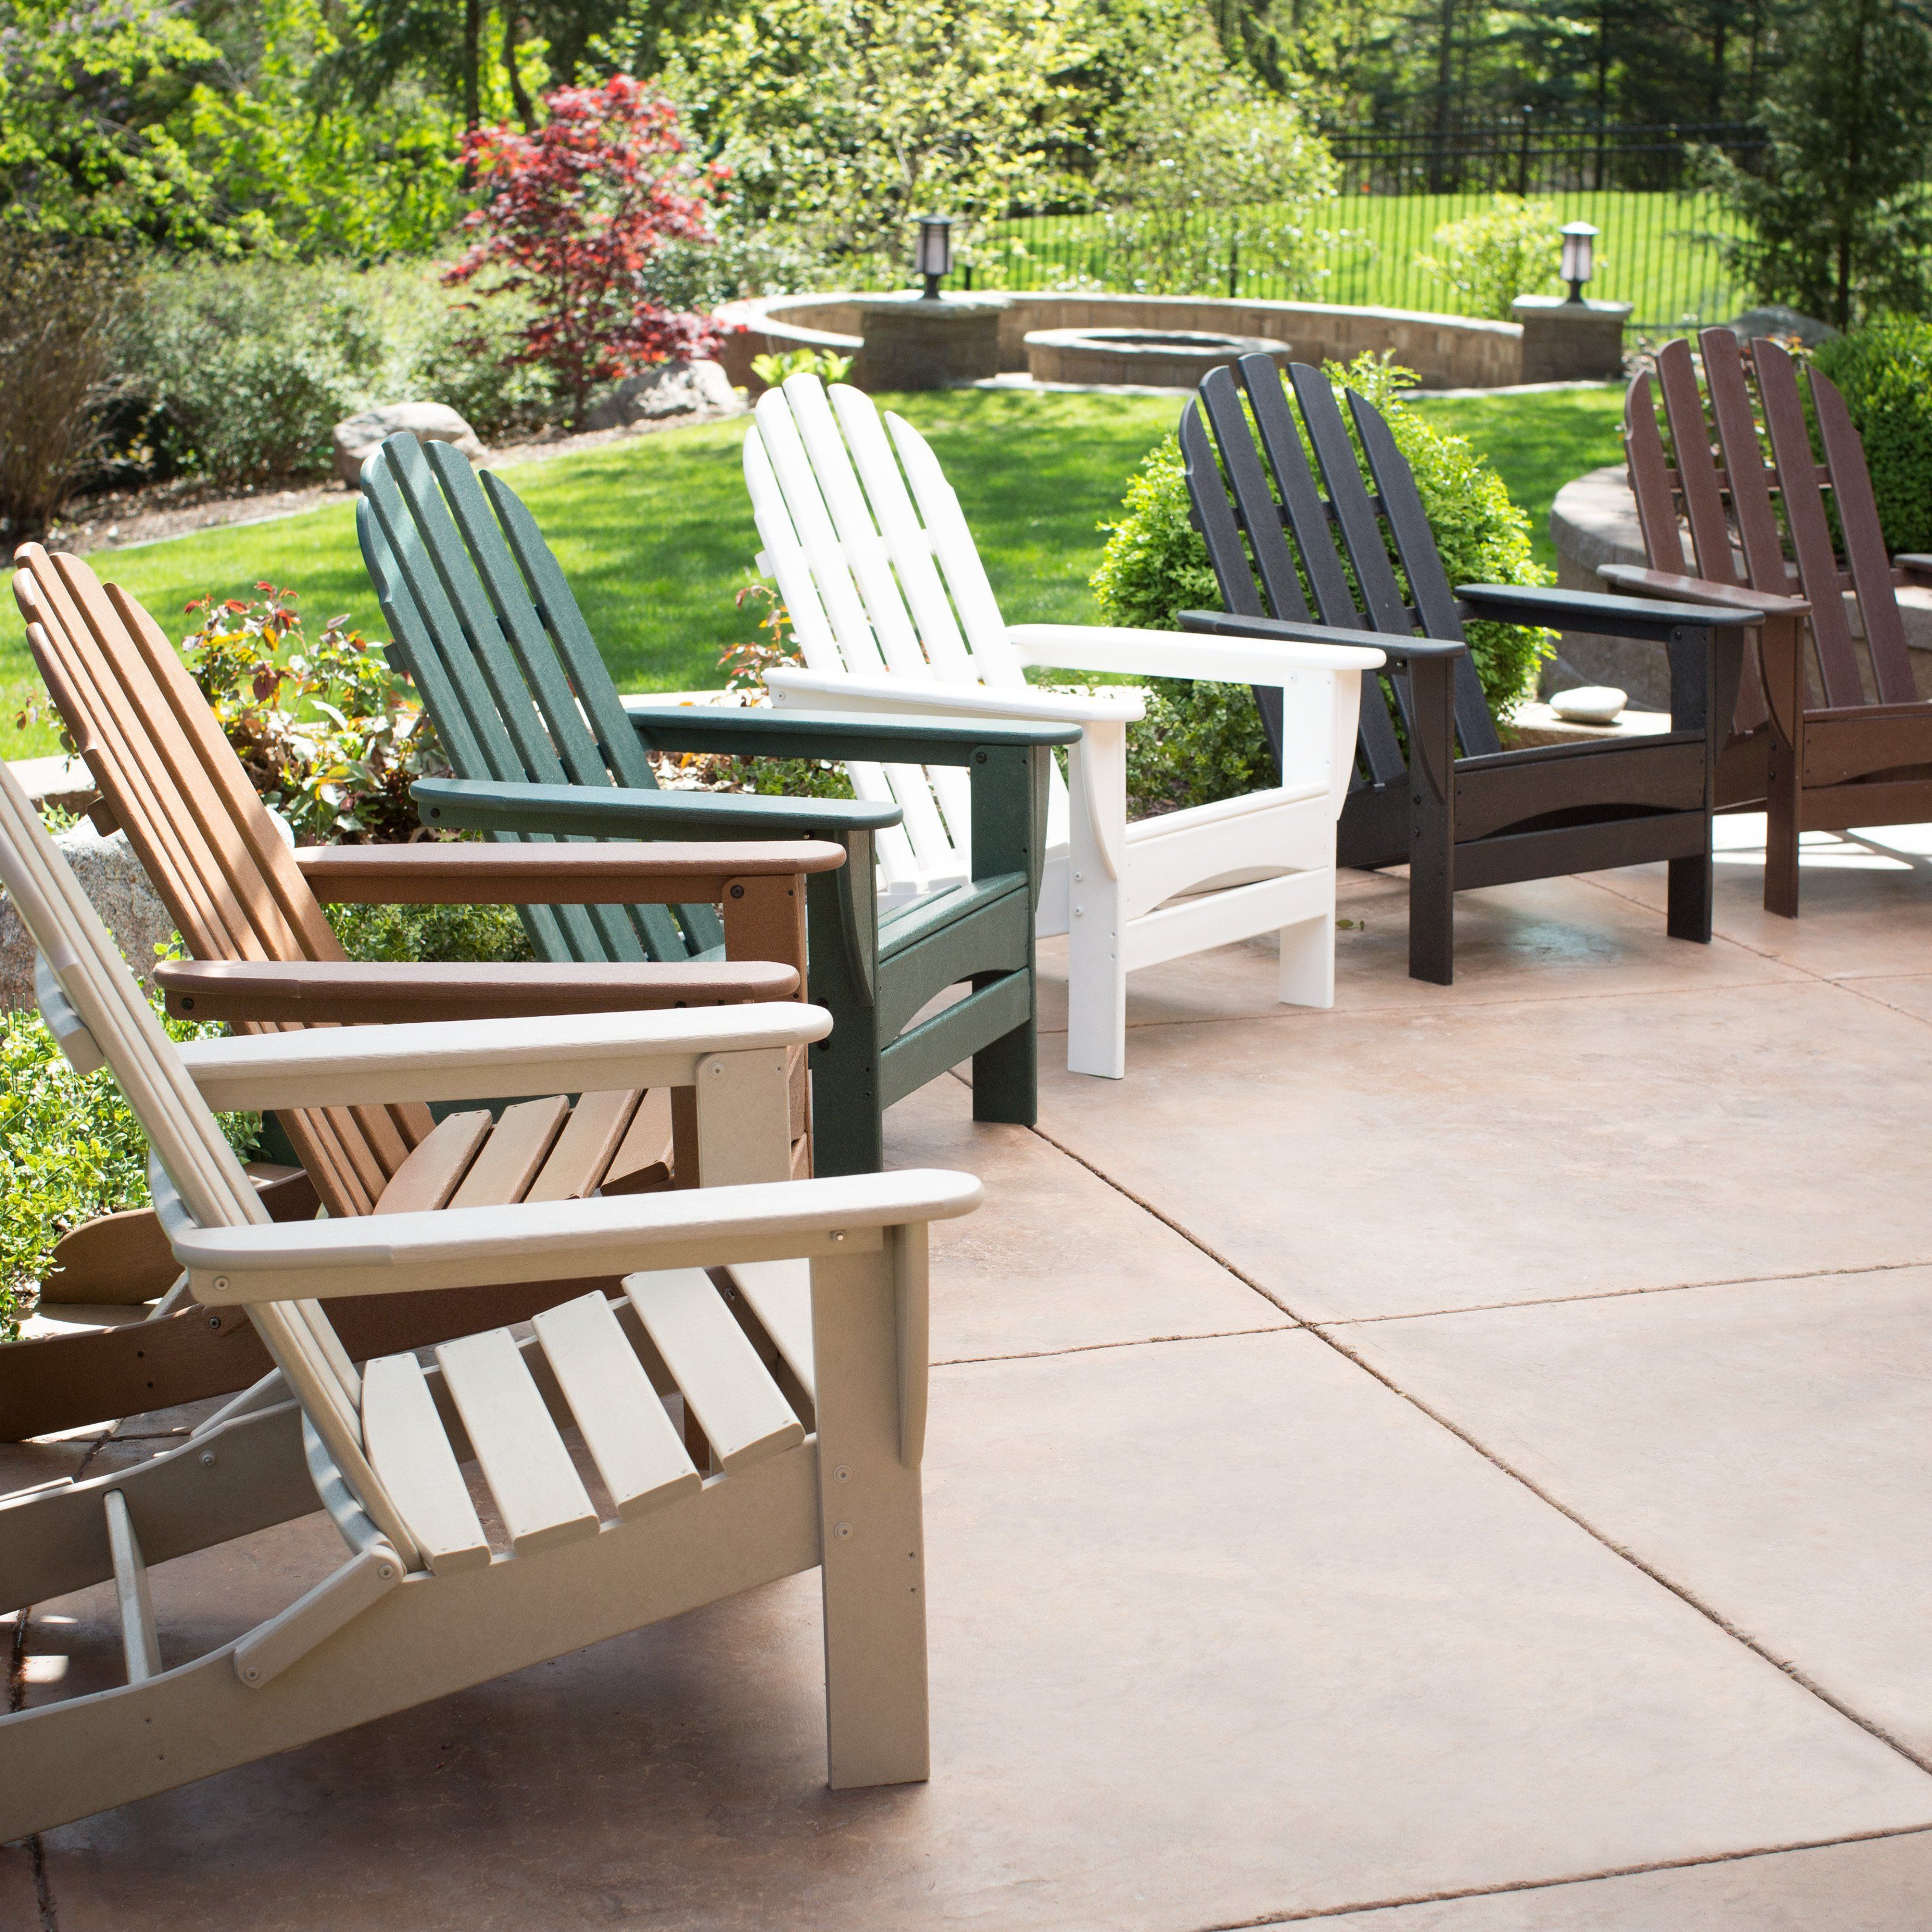 Outdoor Adirondack Chair: Polywood Recycled Plastic Classic Curveback  Adirondack Chair   CBADBL